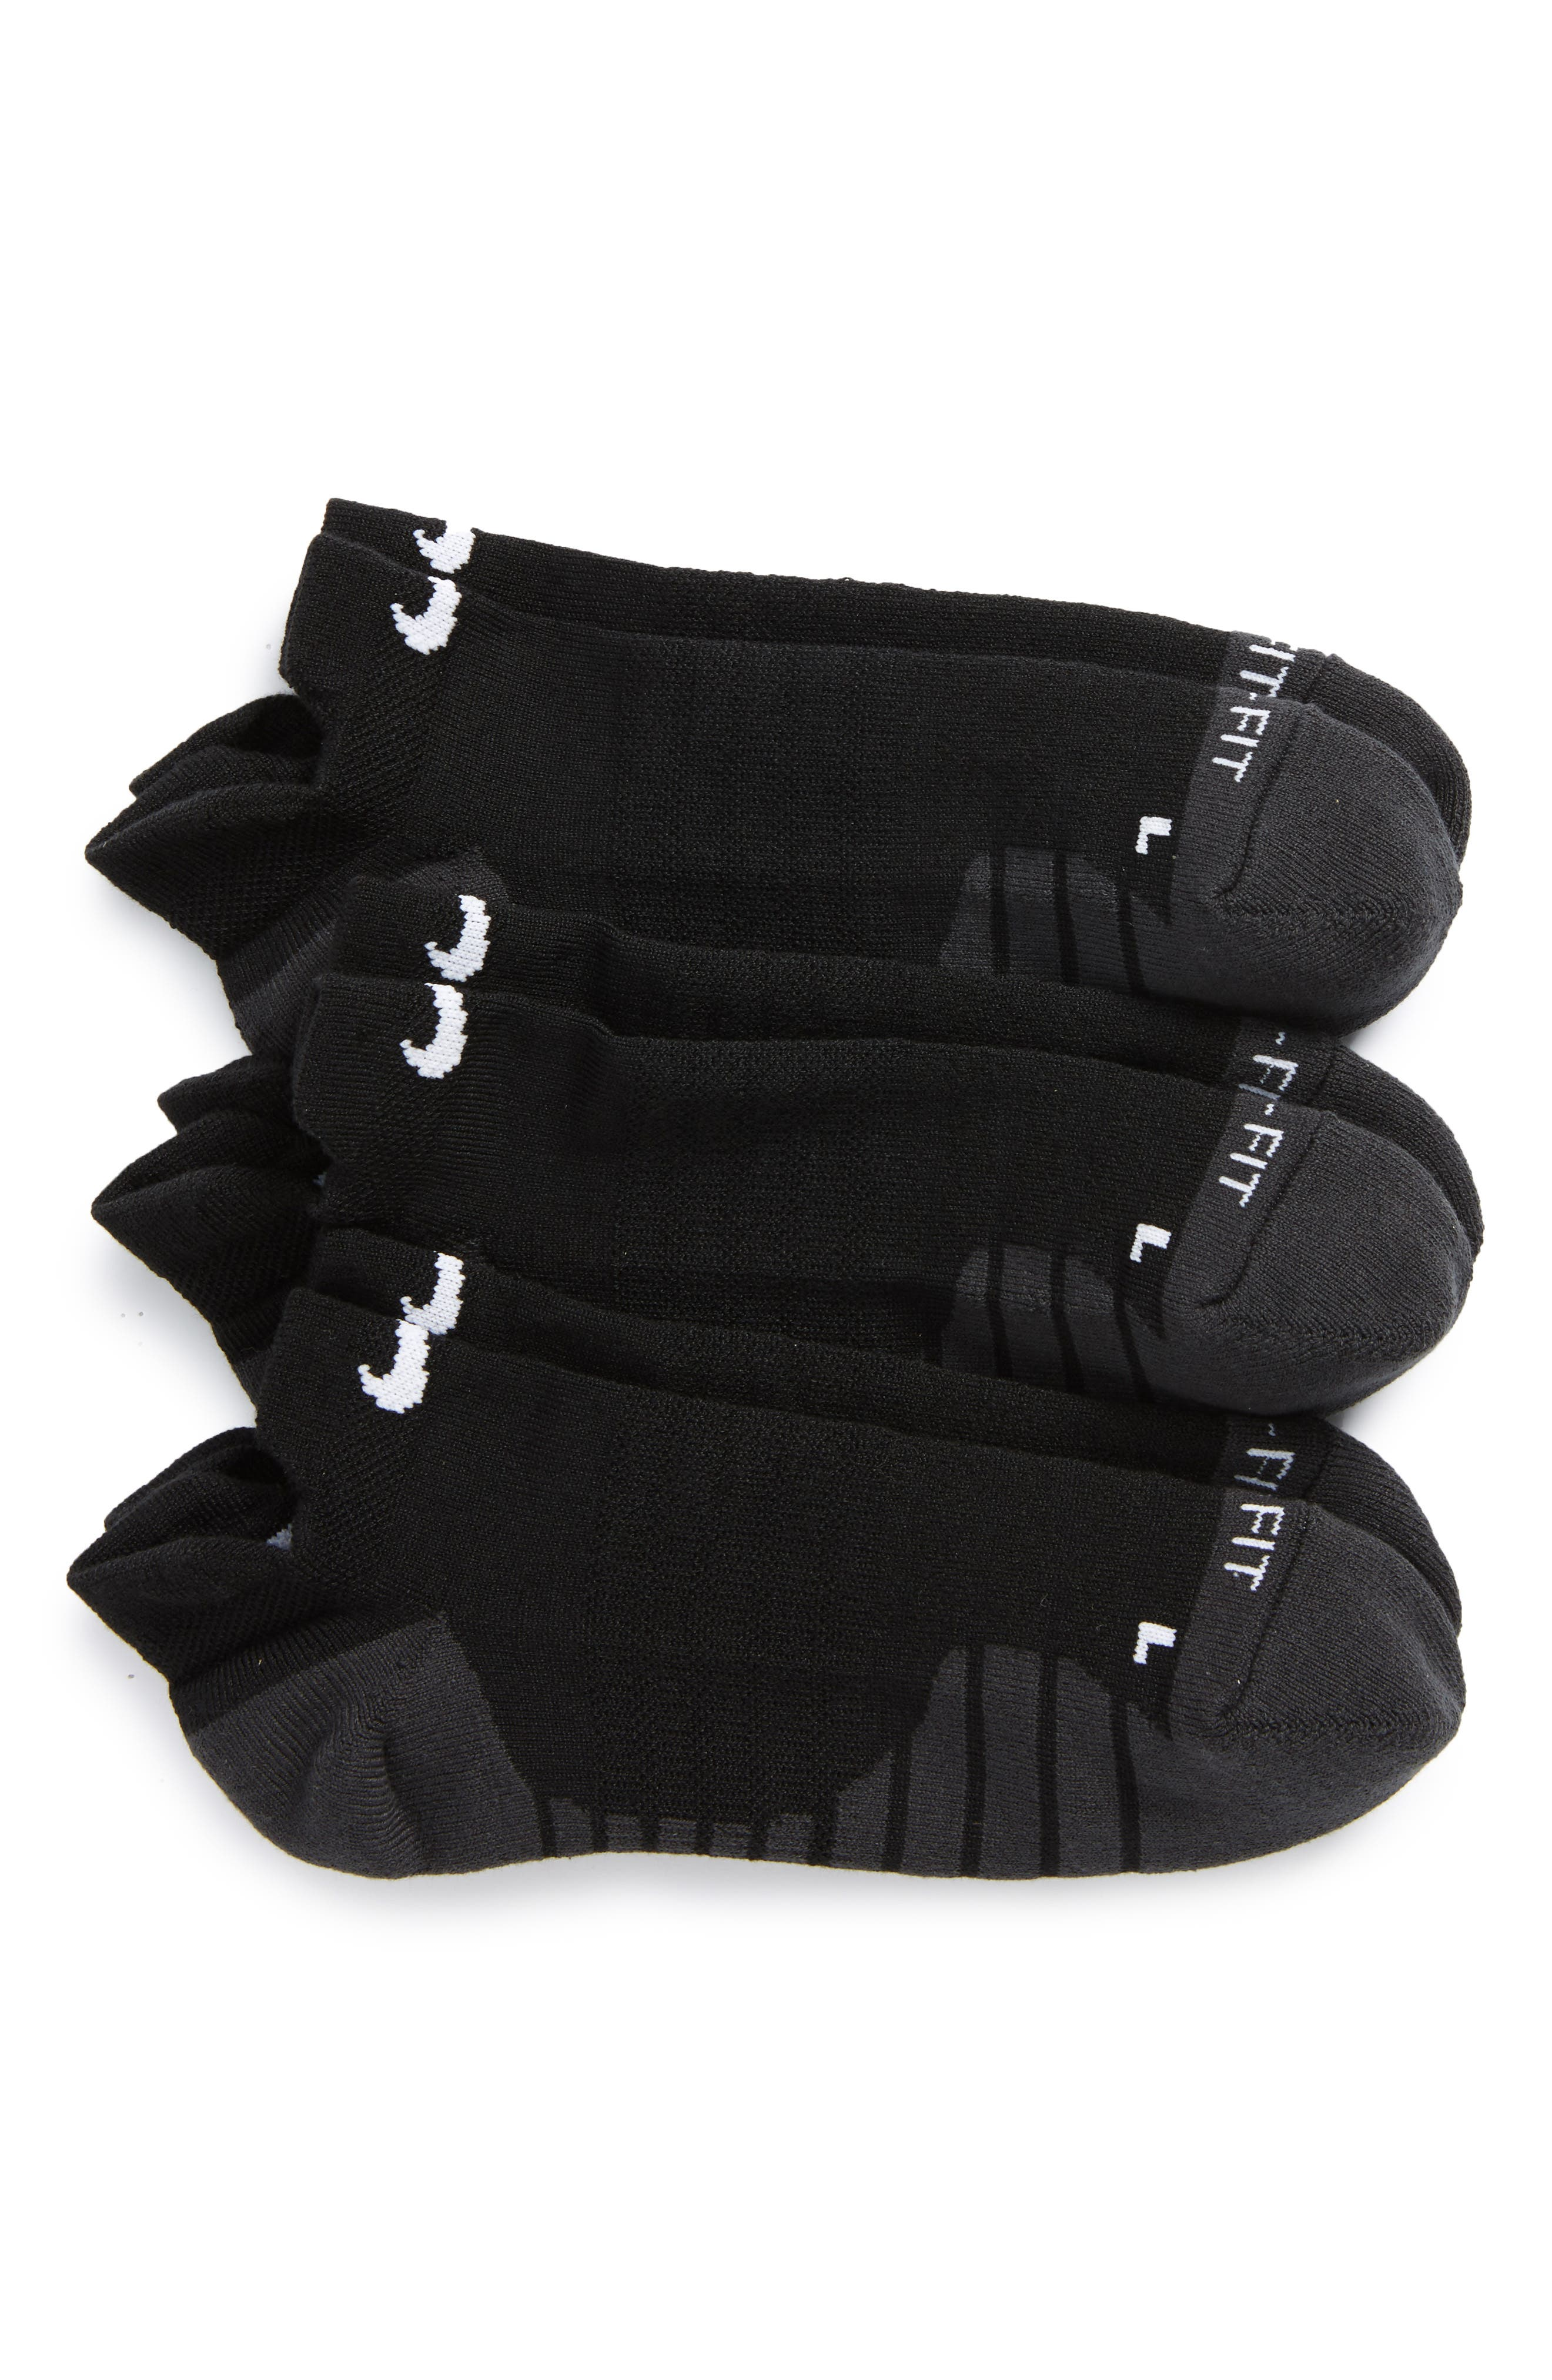 Dry 3-Pack Cushioned Low Cut Socks,                         Main,                         color, Black/ Anthracite/ White